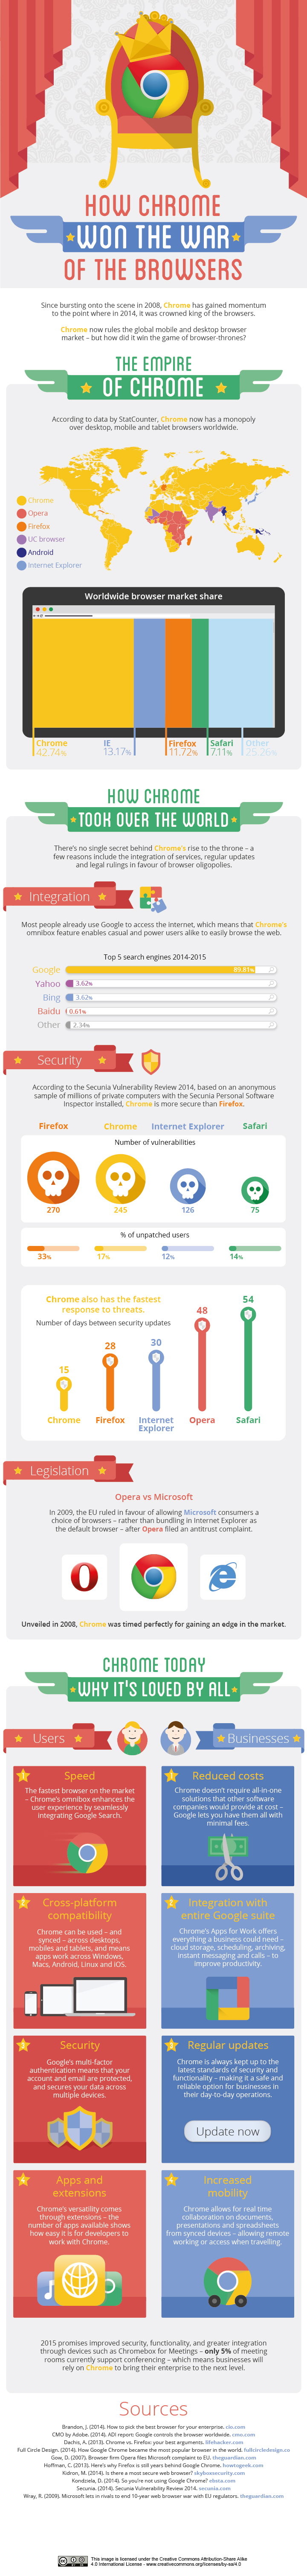 How-chrome-won-the-war-of-the-browsers